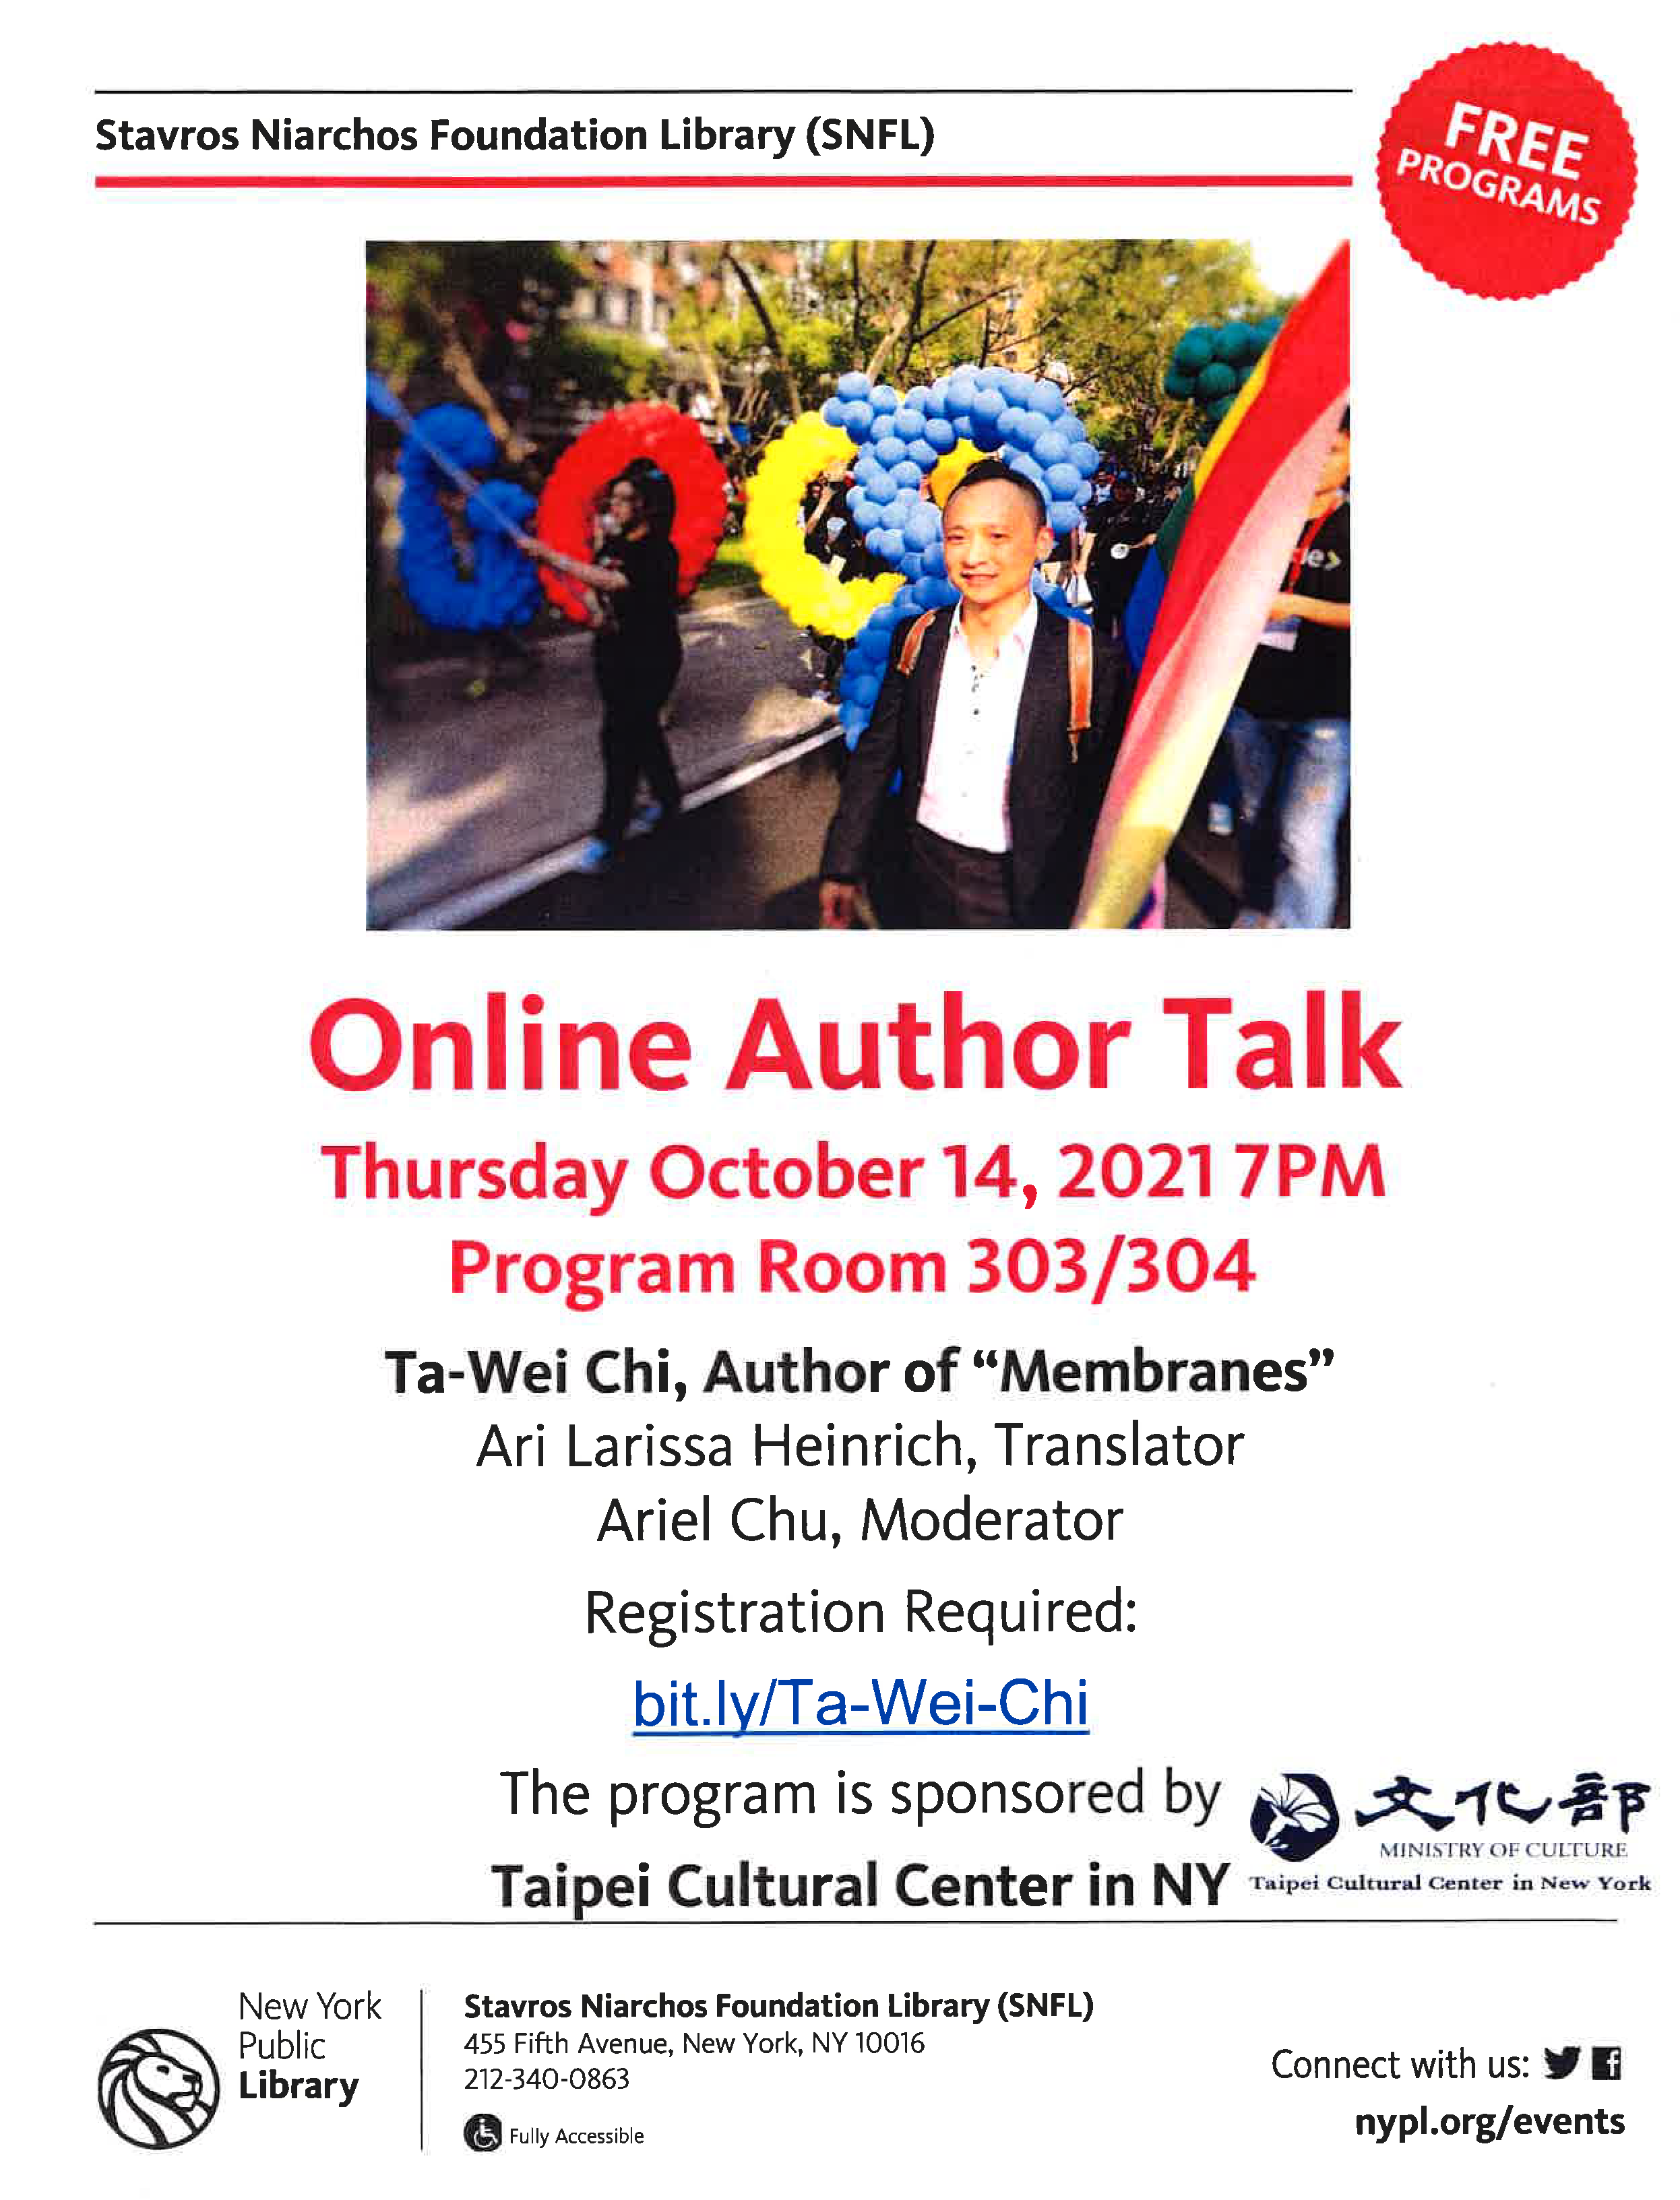 Online Author Talk: Taiwanese Writer CHI TA-WEI and Translator ARI LARISSA HEINRICH-- THE MEMBRANES on October 14